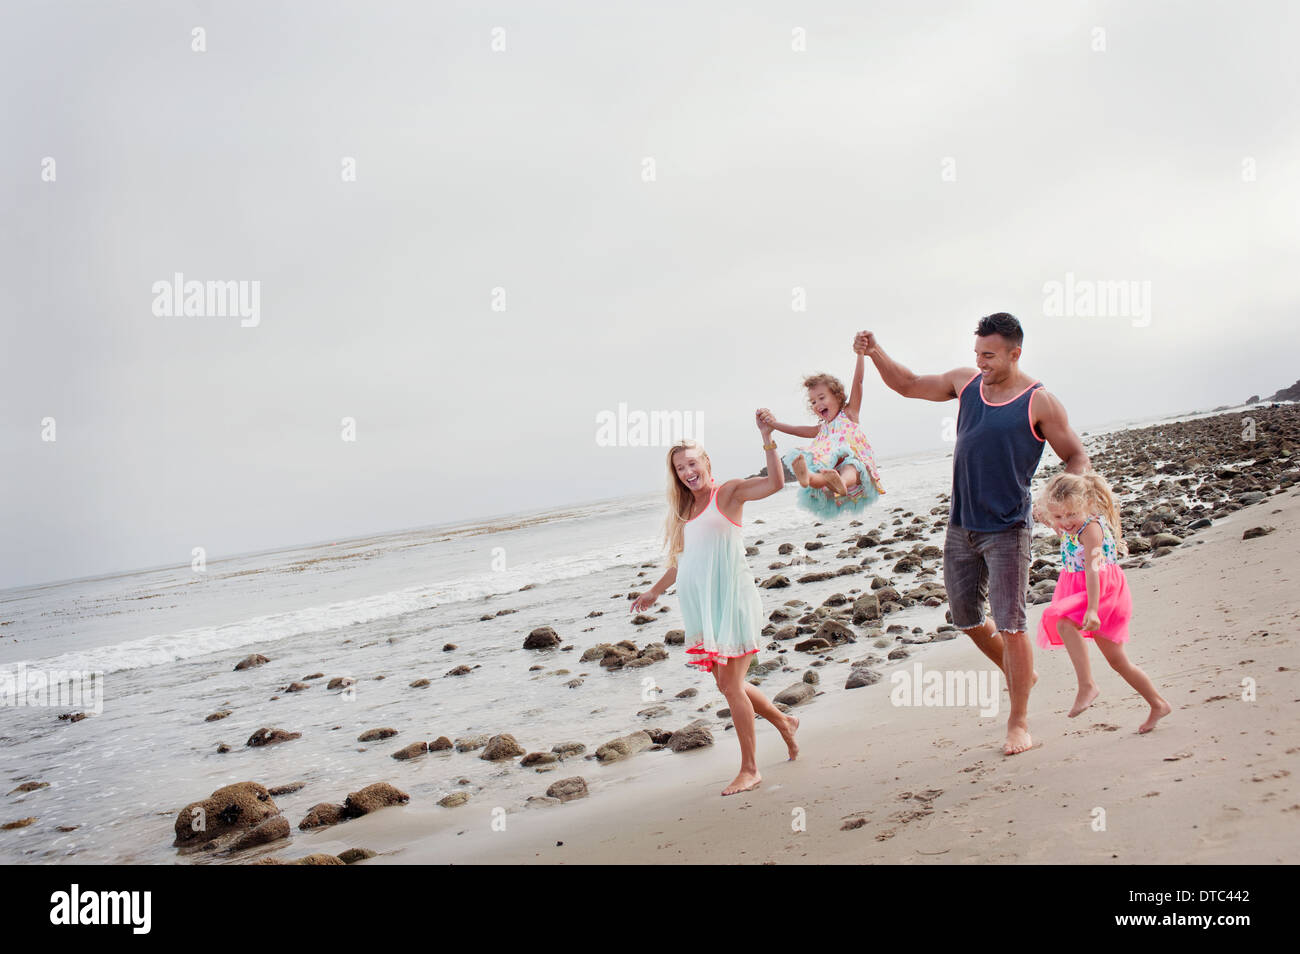 Parents and two young girls walking on beach - Stock Image